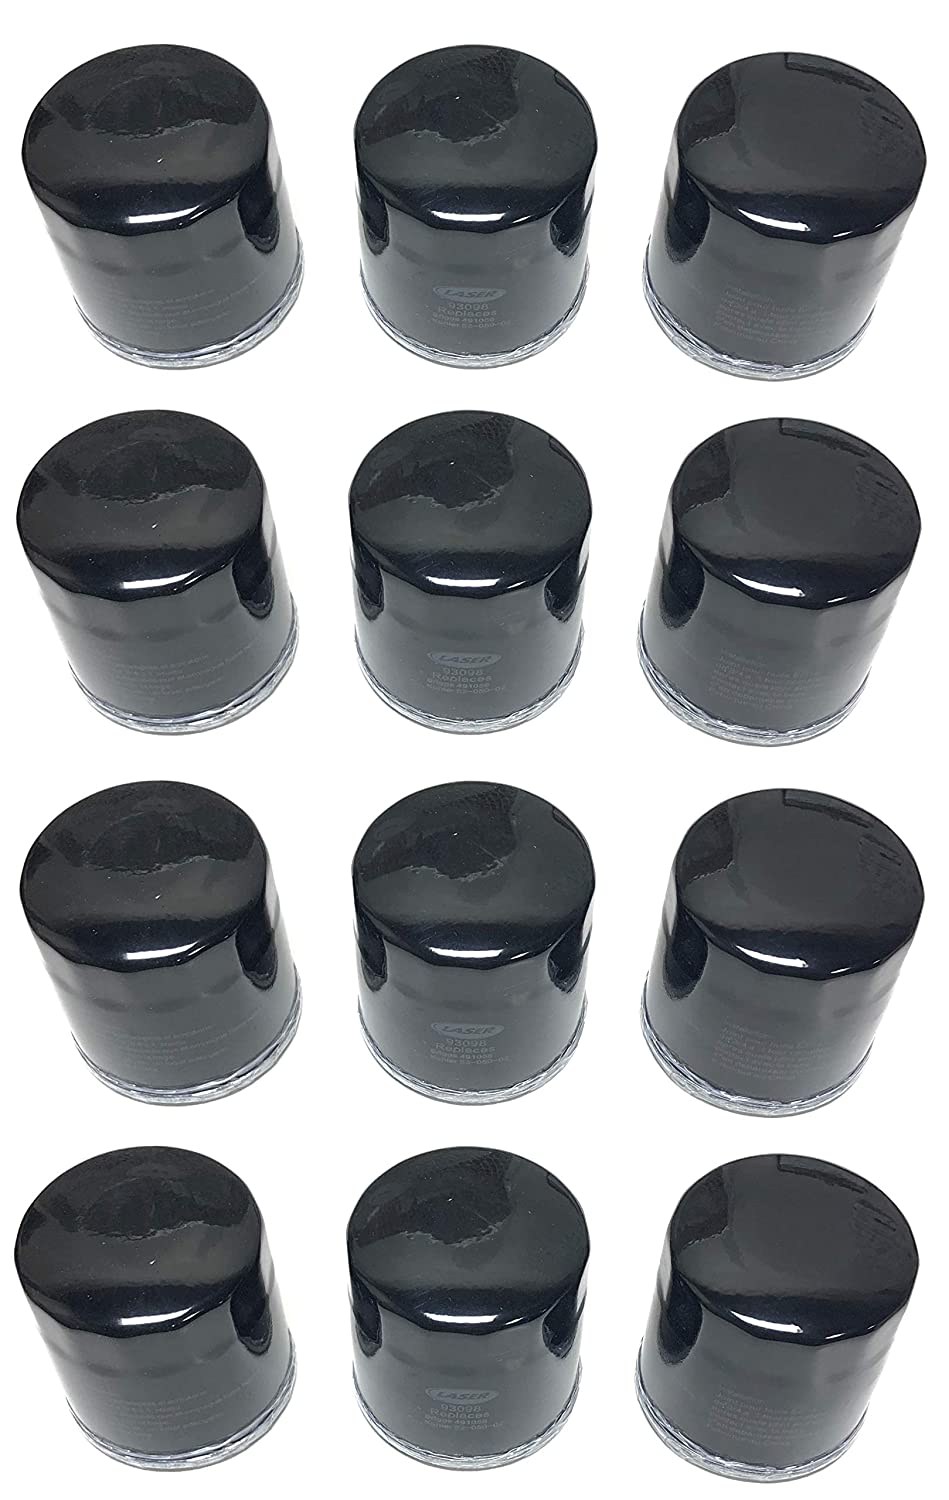 Rotary Shop Pack (12) Replacement Oil Filter for Kohler 52-050-02, 52-050-02-S